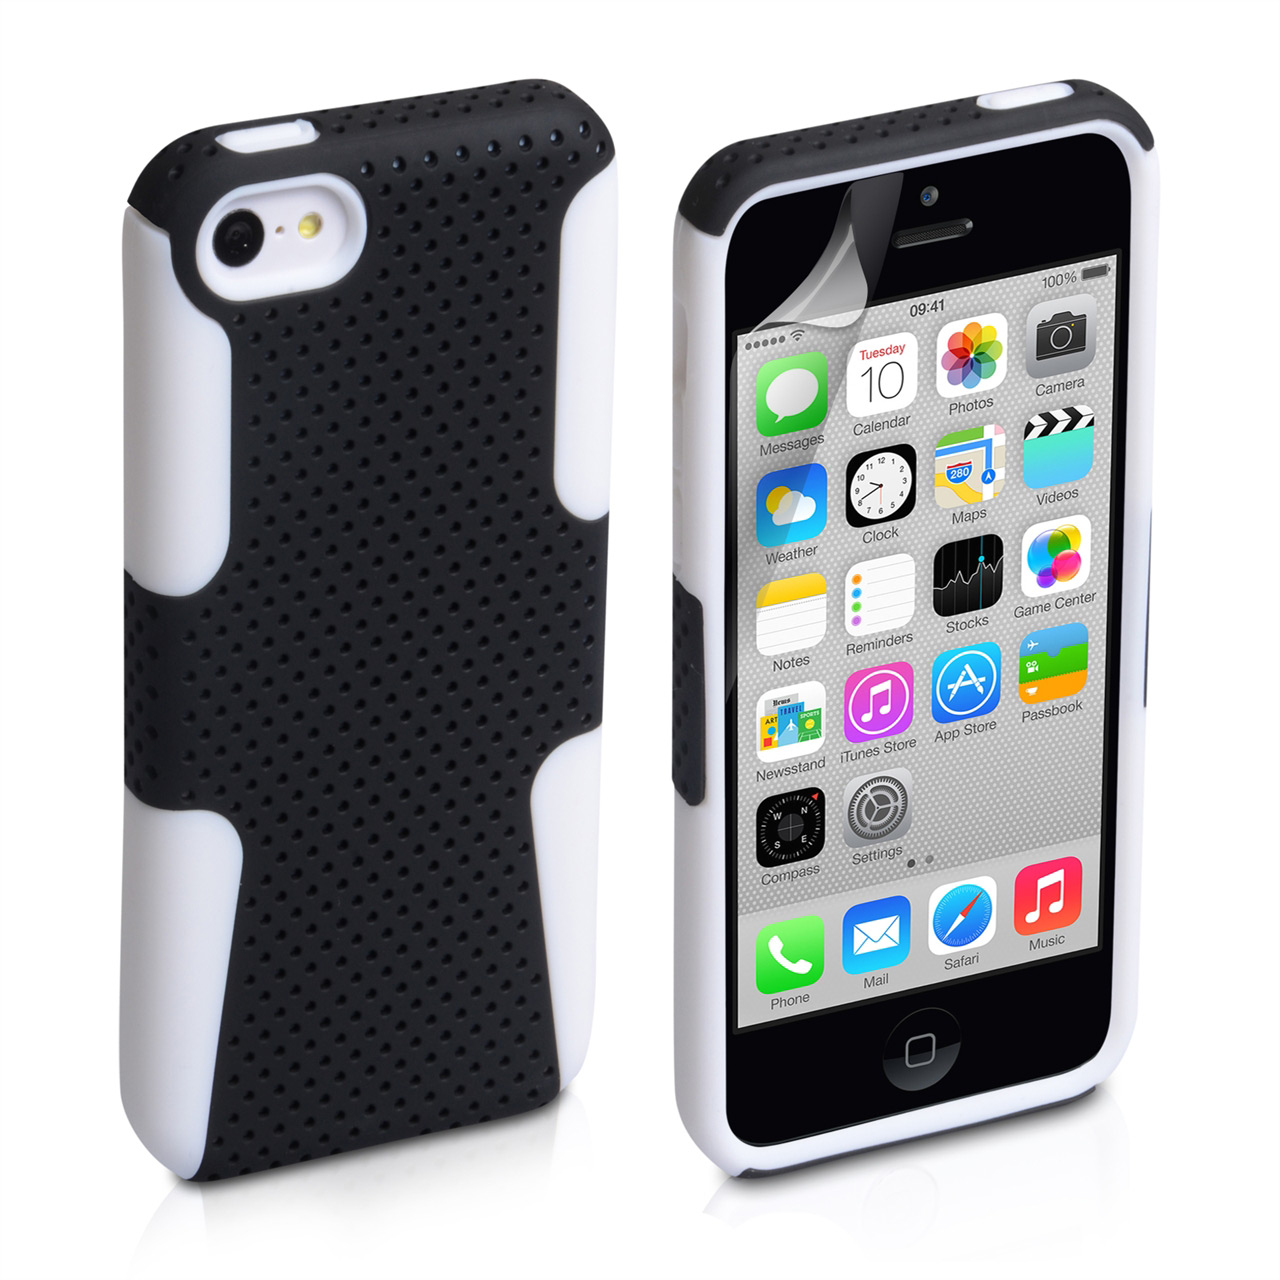 YouSave Accessories iPhone 5C Mesh Combo Case - White